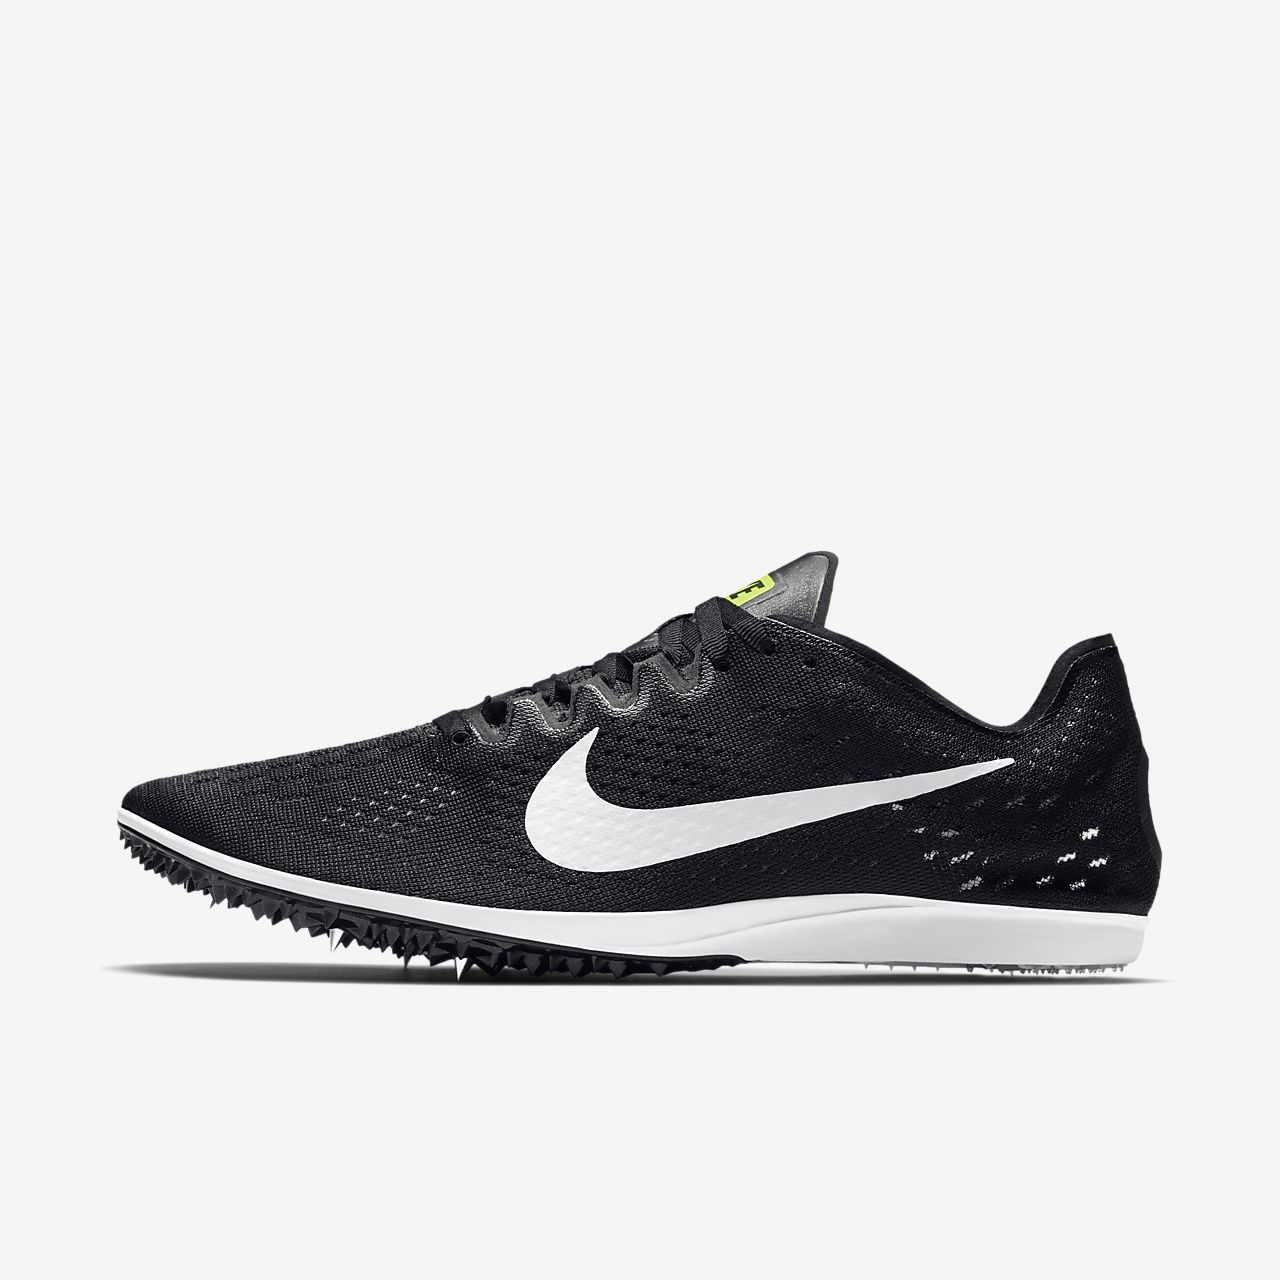 Nike Zoom Matumbo 3 (835995-017) Womens Running Shoes Black/White